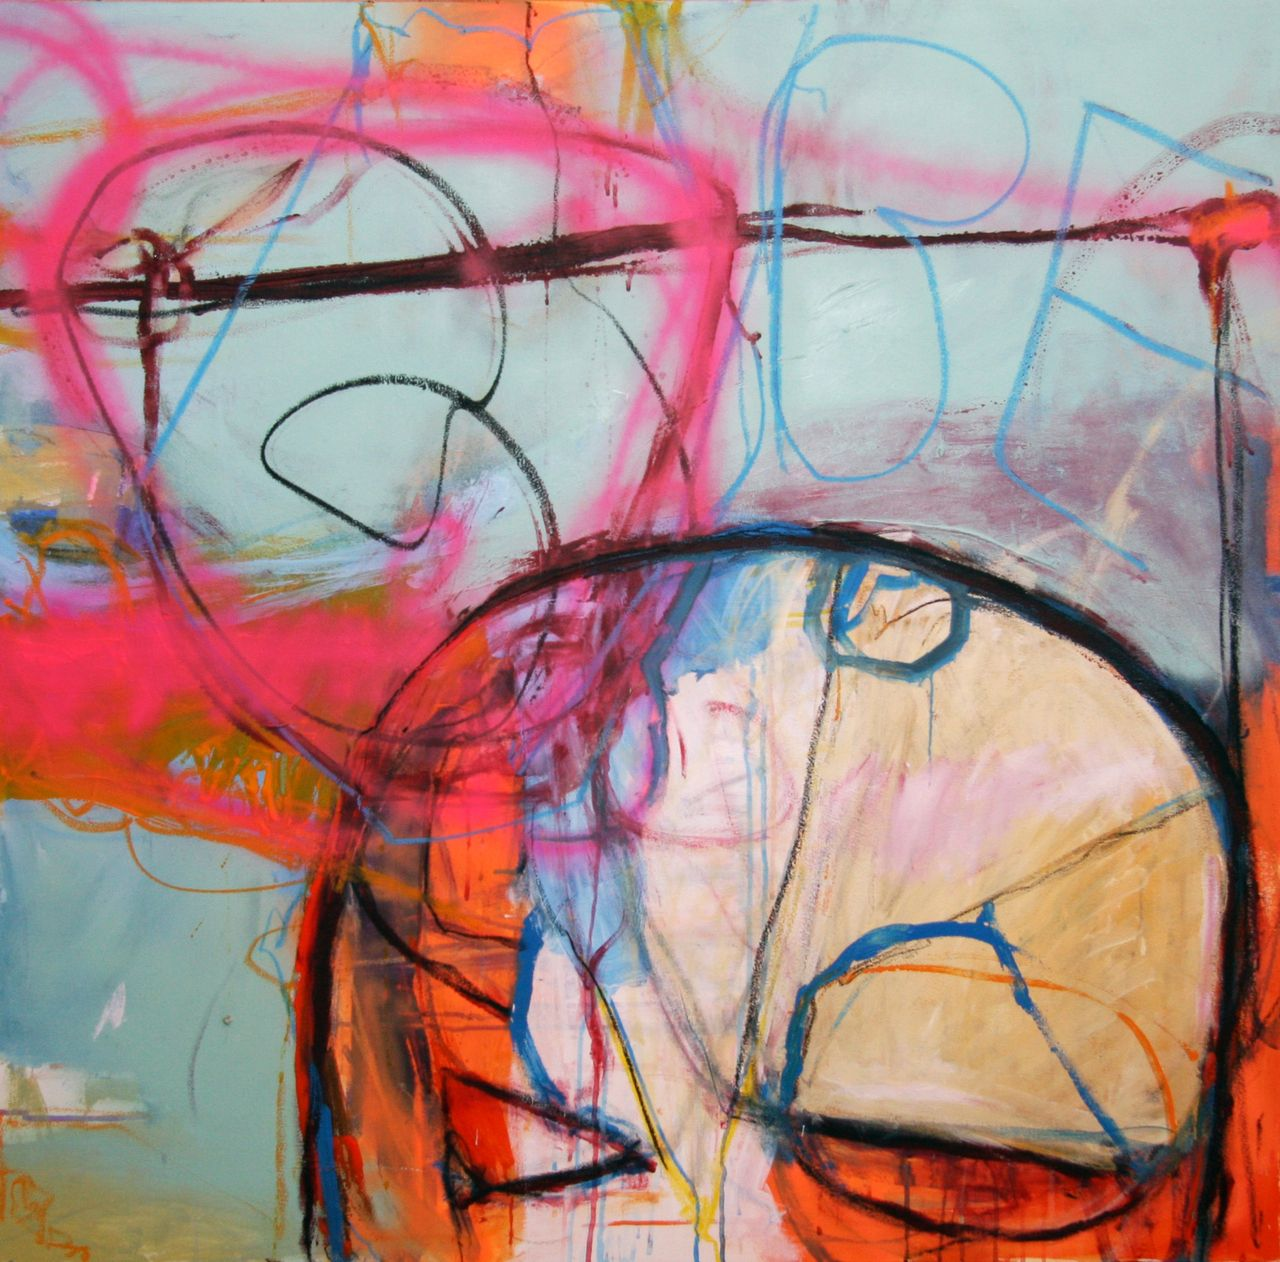 The Unknown Superhero Be - Greg Holden Regan - from the BE WE series. #art #modern #encinitas #abstract #color # painting